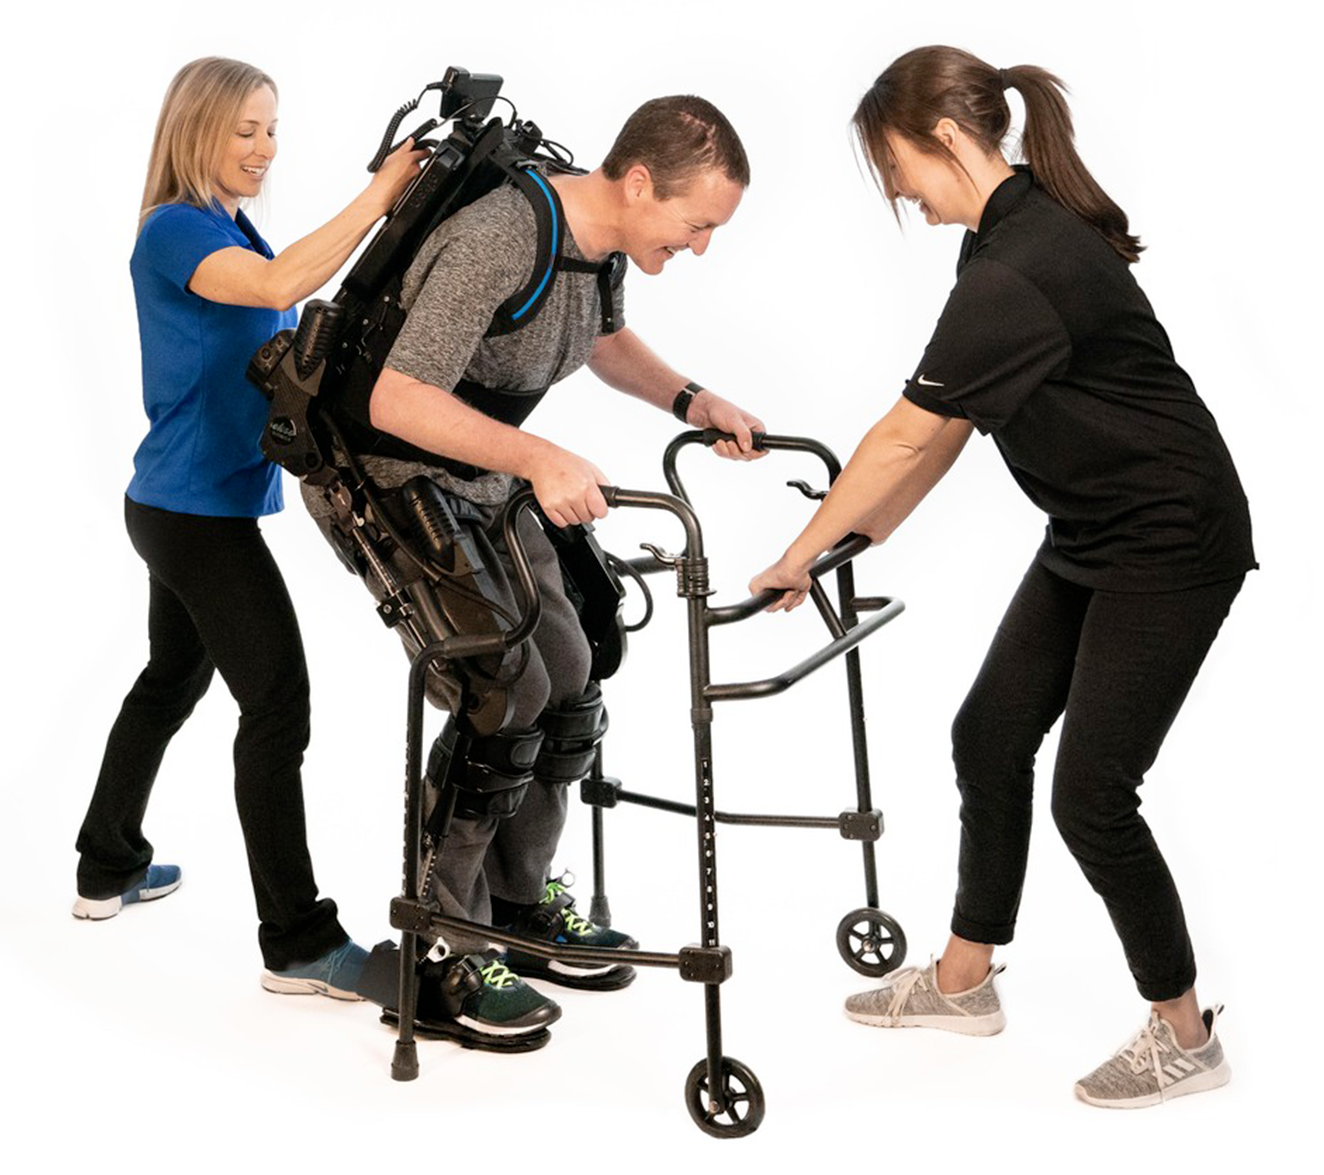 Eksosuit for physical therapy